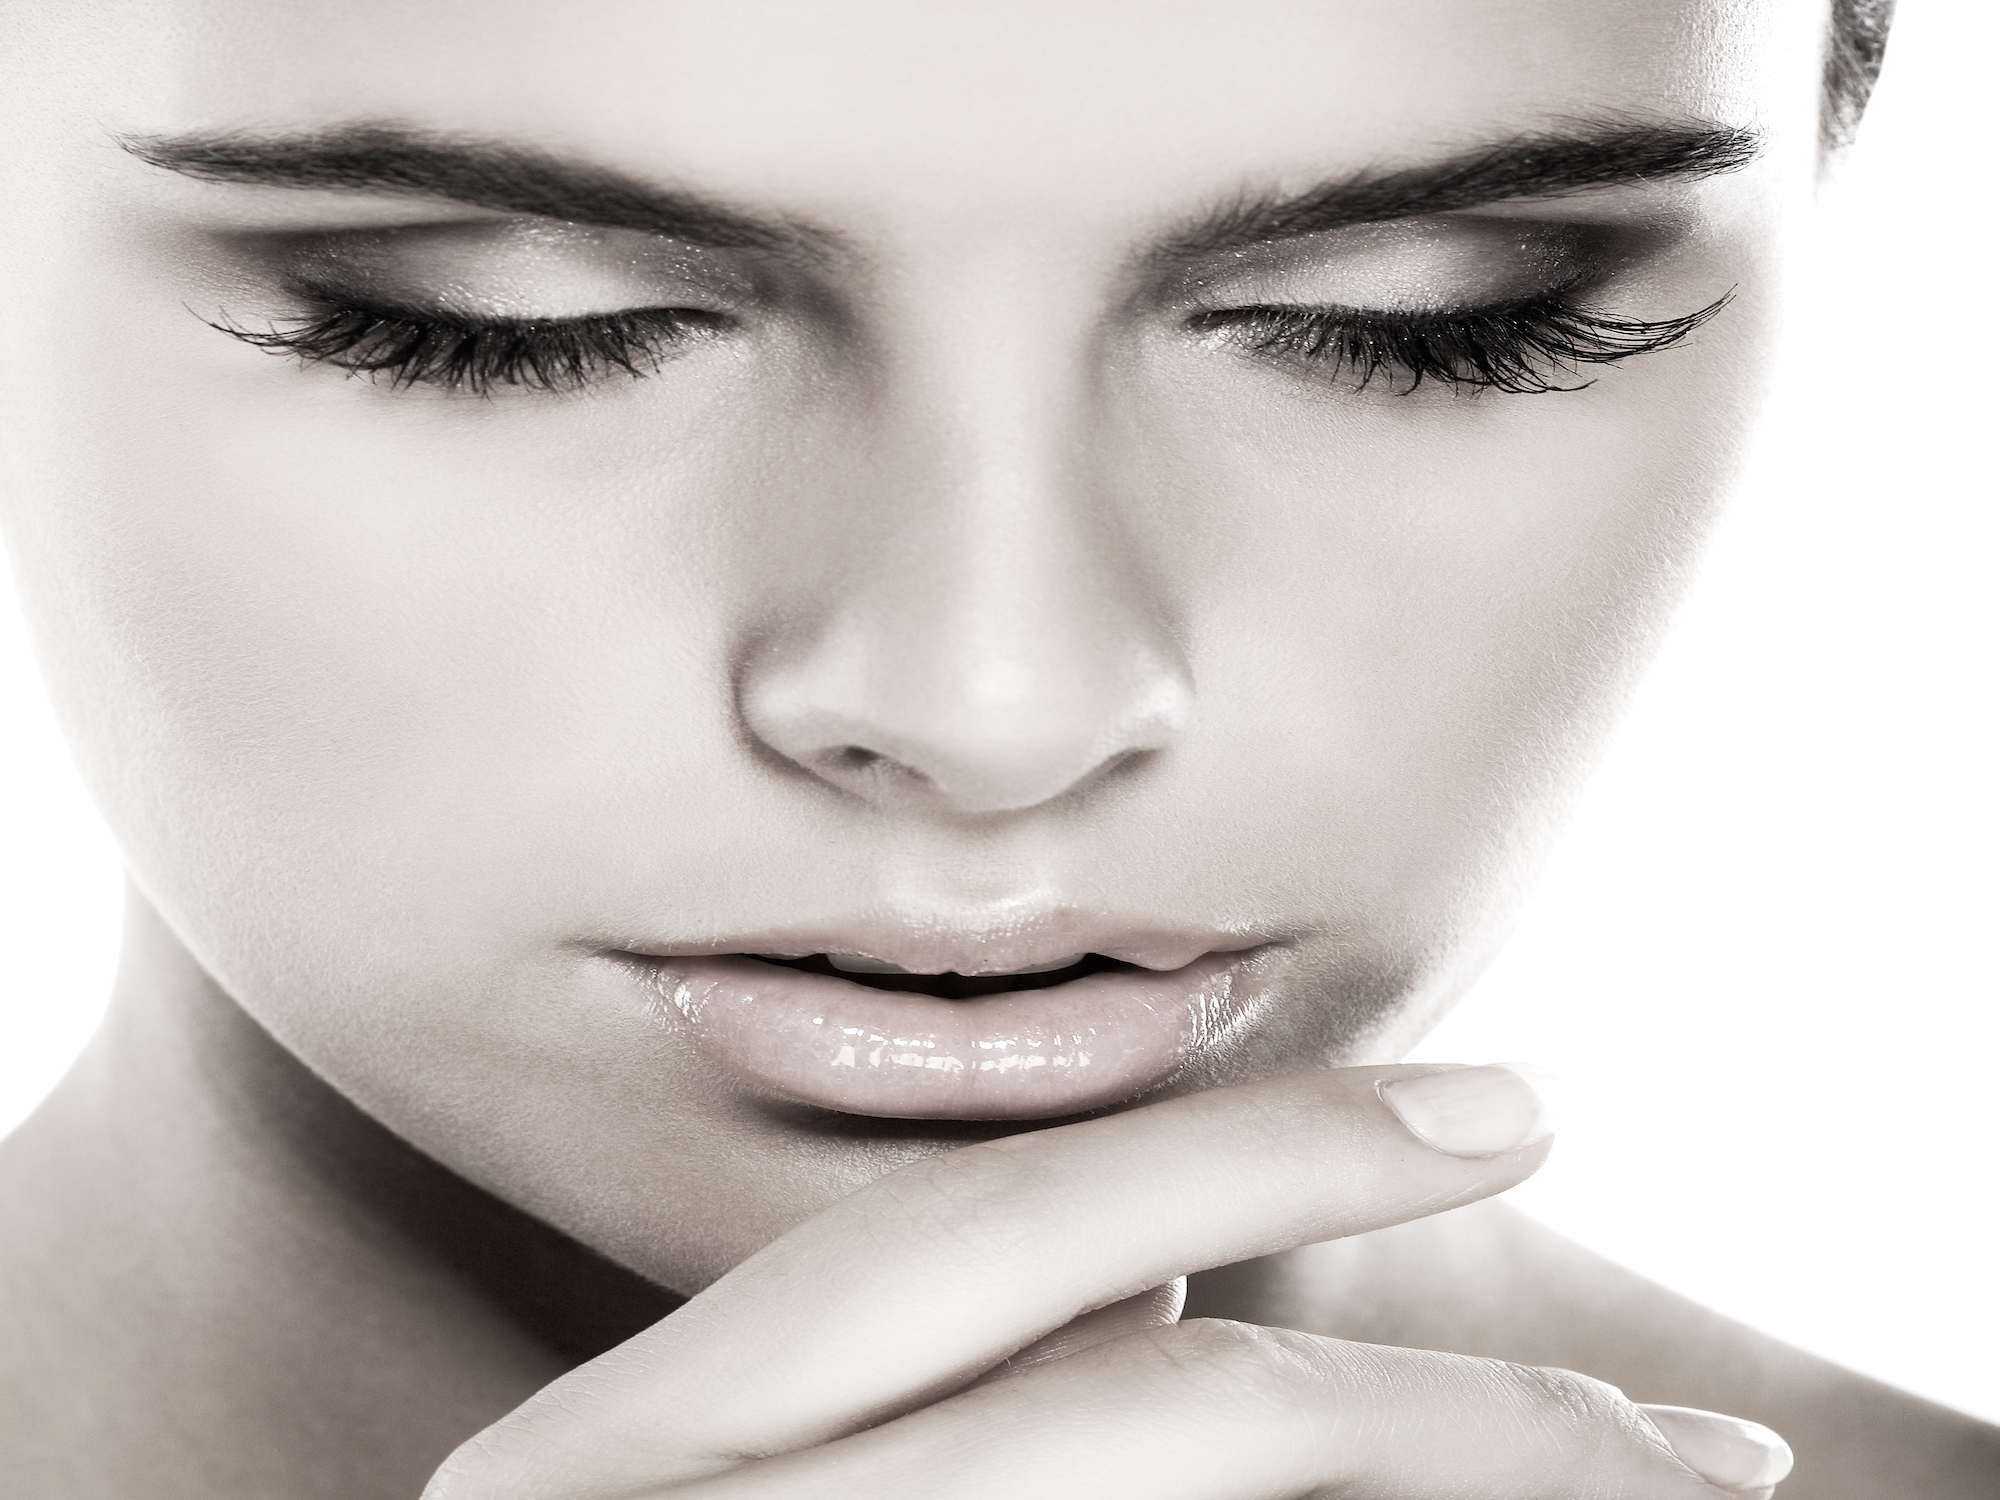 We Specialise in all Types of Skin & Cosmetic Laser Treatments